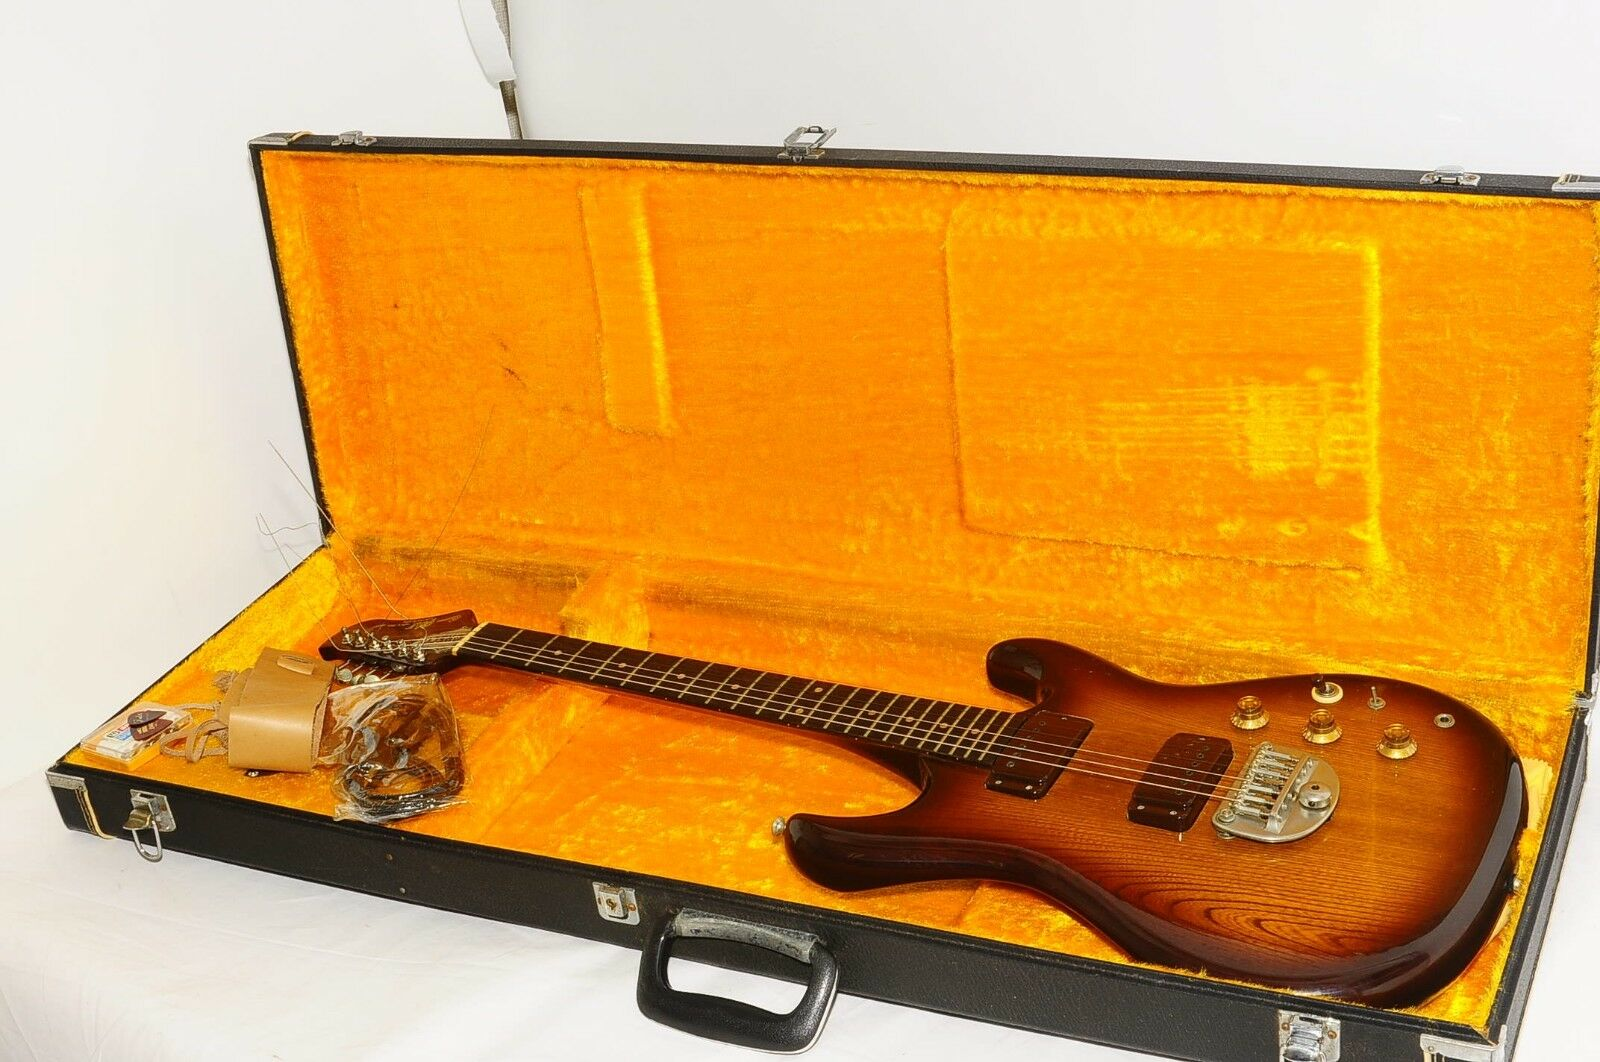 Excellent Greco GOII Japan Electric Guitar Ref.No 1414